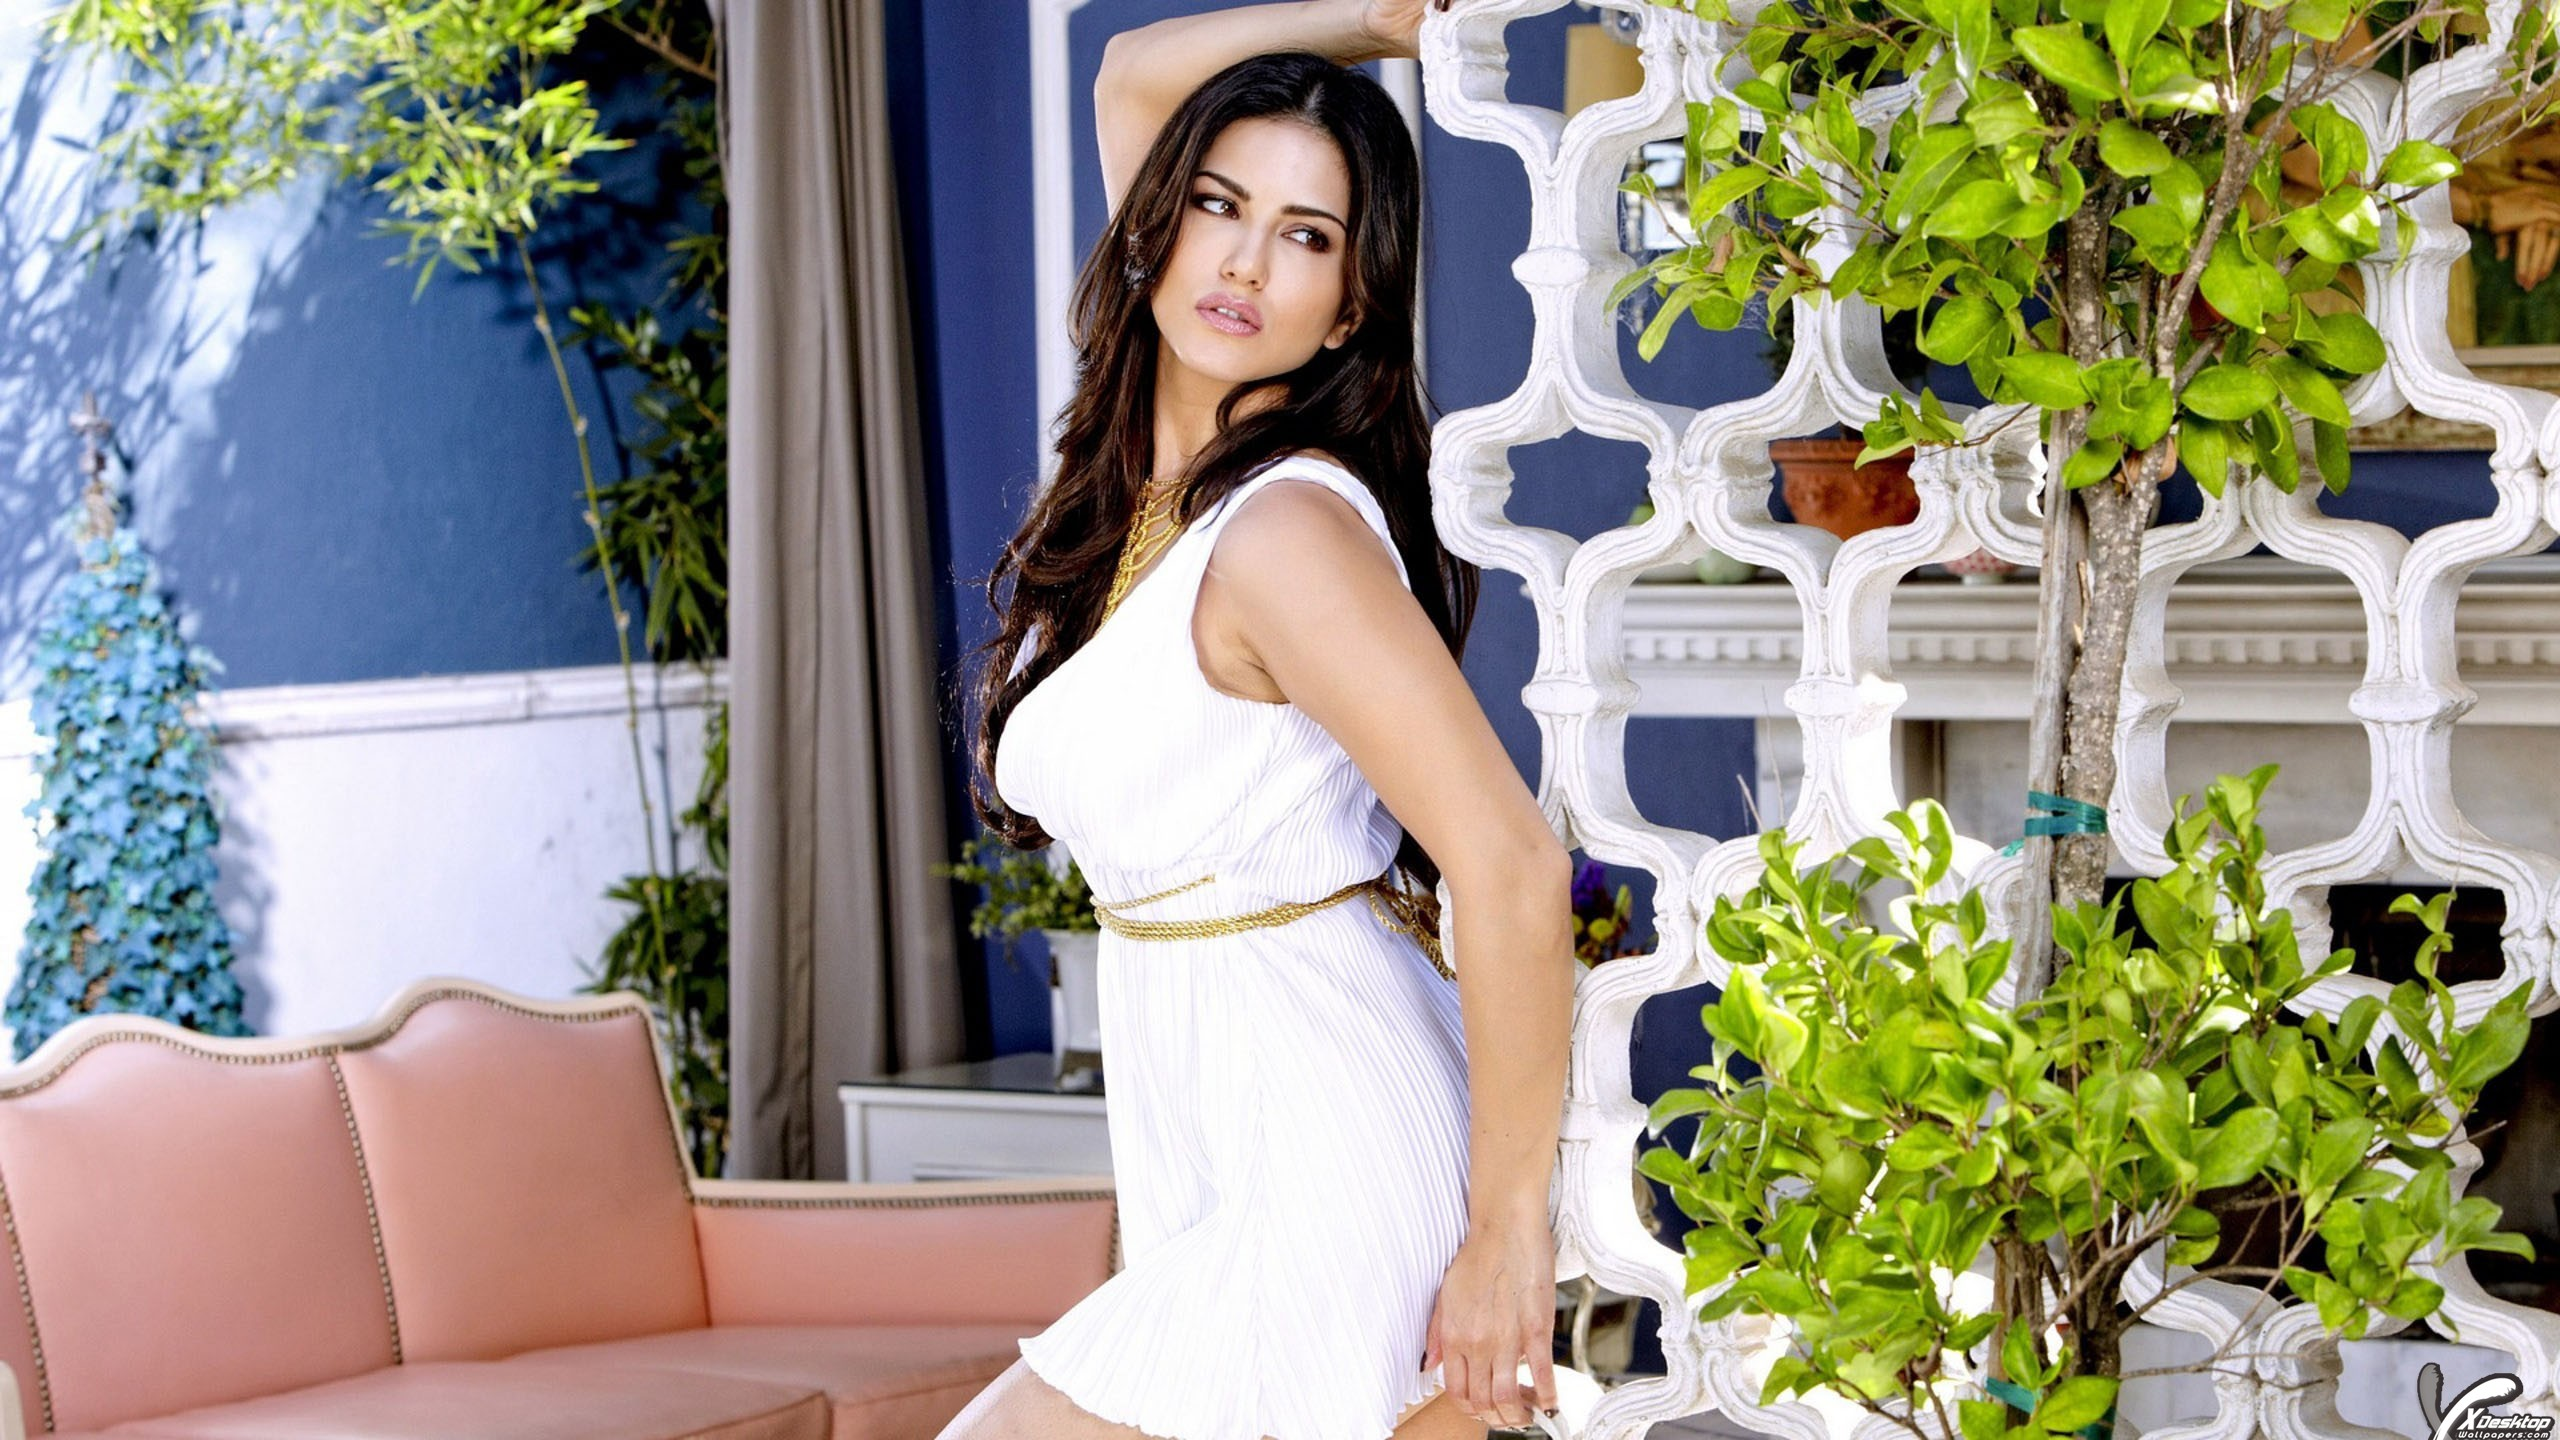 sunny leone wallpapers, photos & images in hd